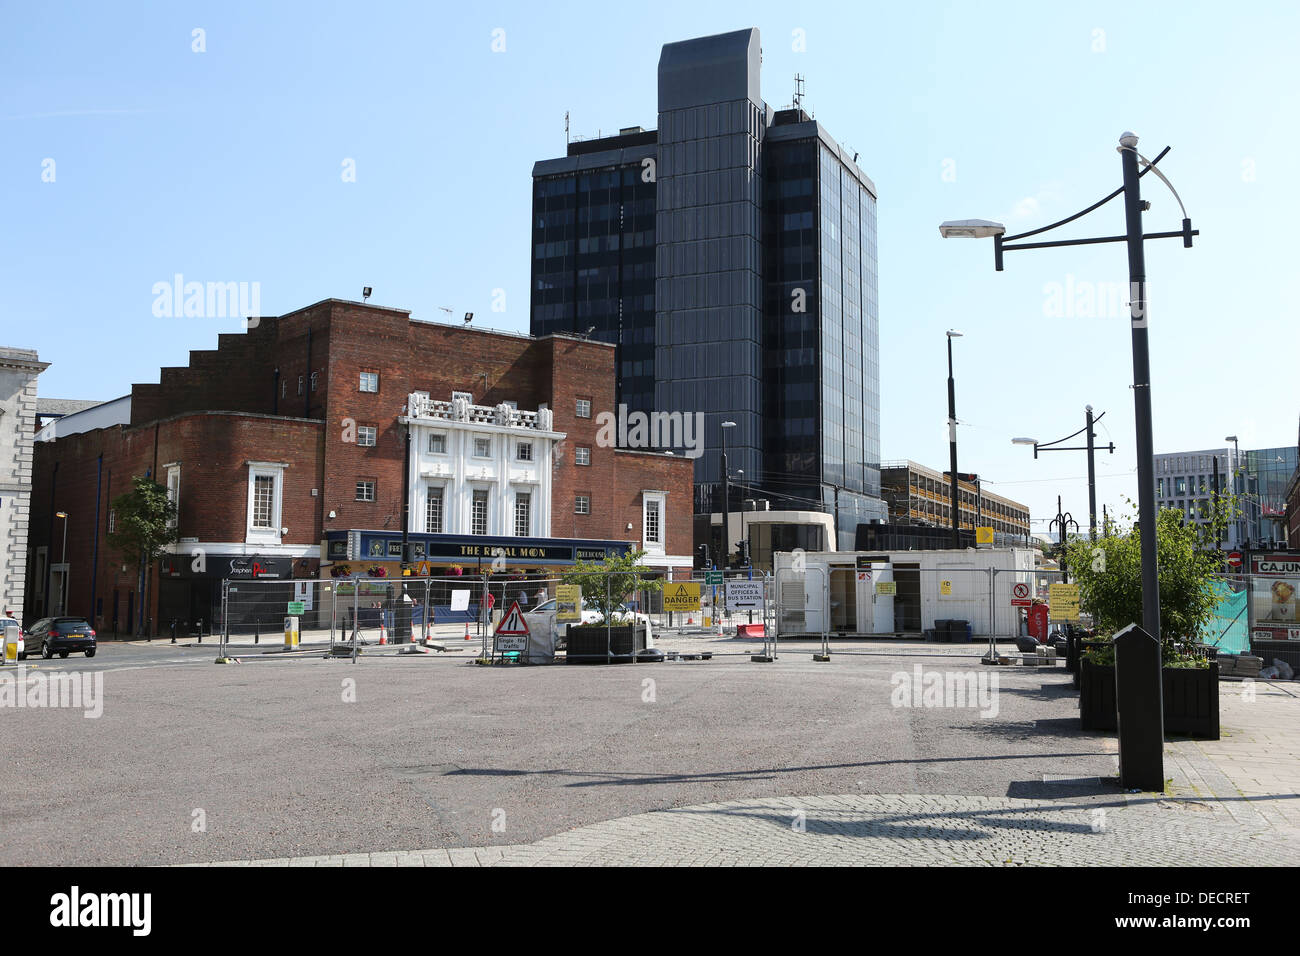 rochdale council building, the black box, rochdale greater manchester - Stock Image